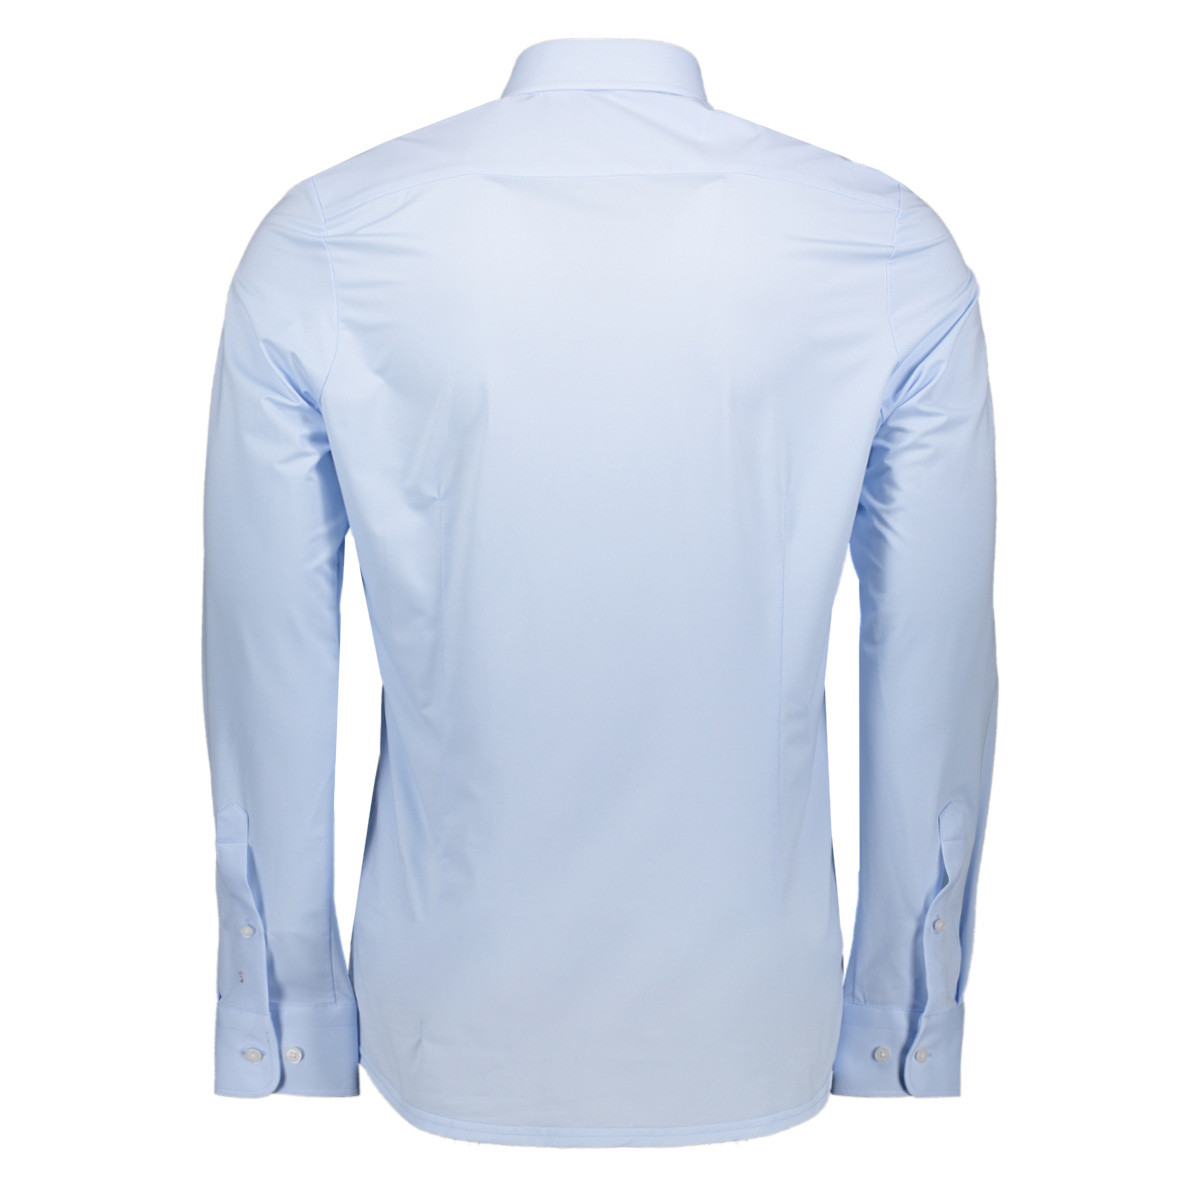 shirt longsleeve 4028 21750 pure h. tico overhemd 100 uni light blue